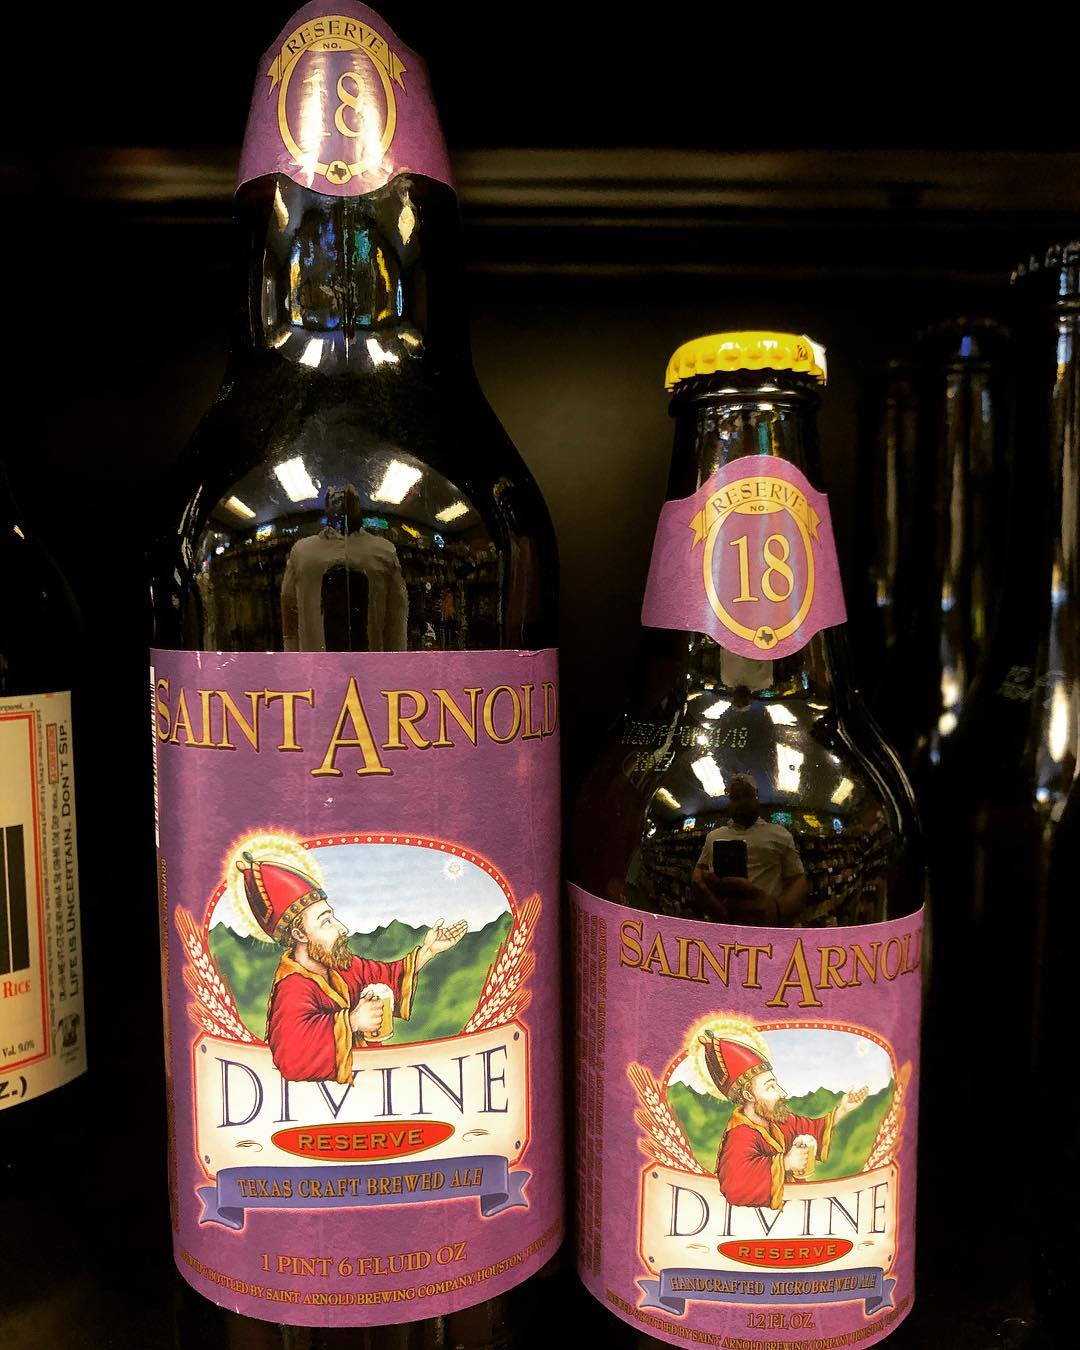 @saintarnoldbrewing Divine Reserve 18, Imperial Stout, is now available in limited quantities at our Perkins…